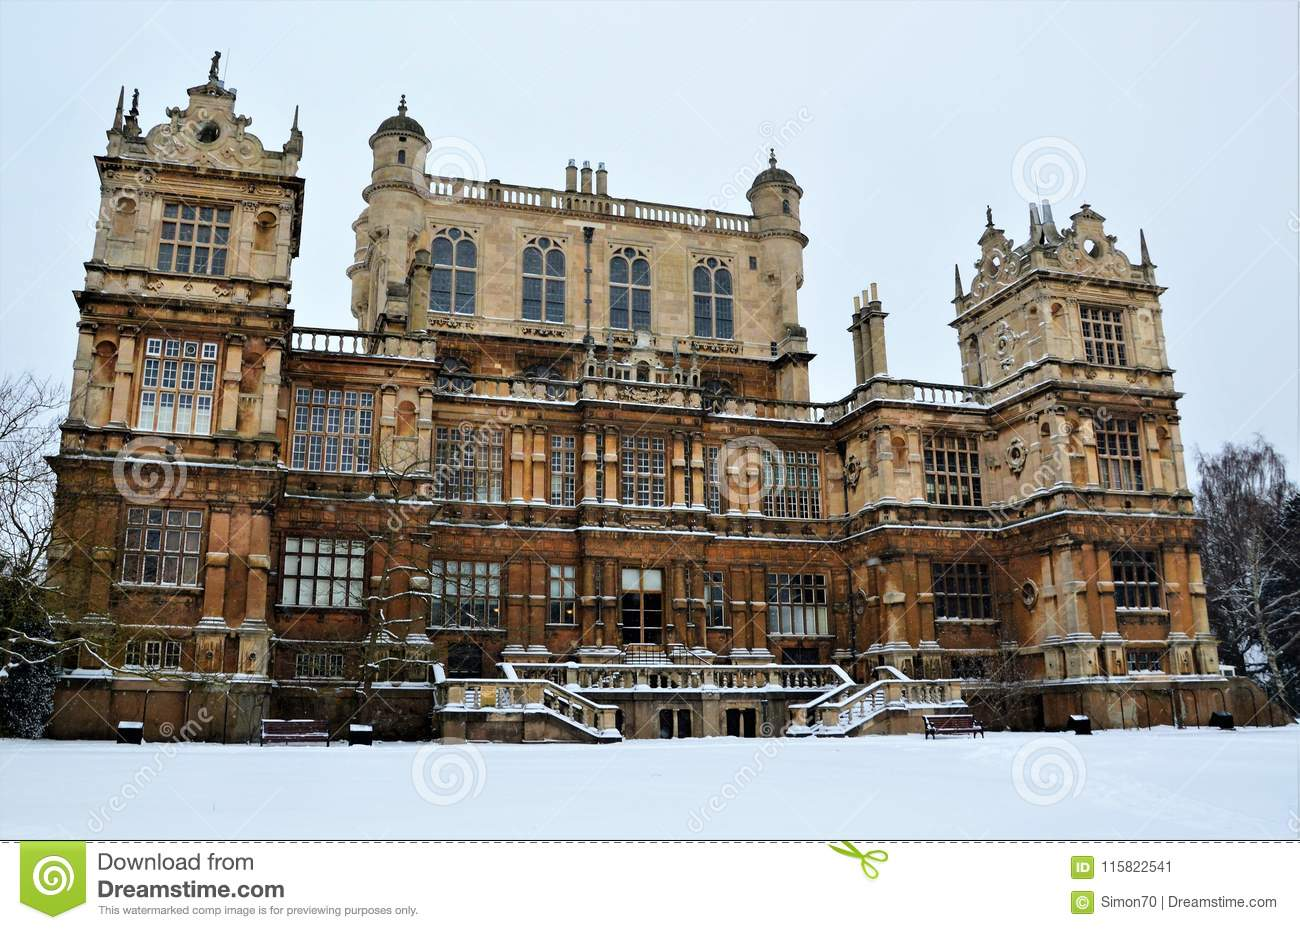 Winter wollaton hall